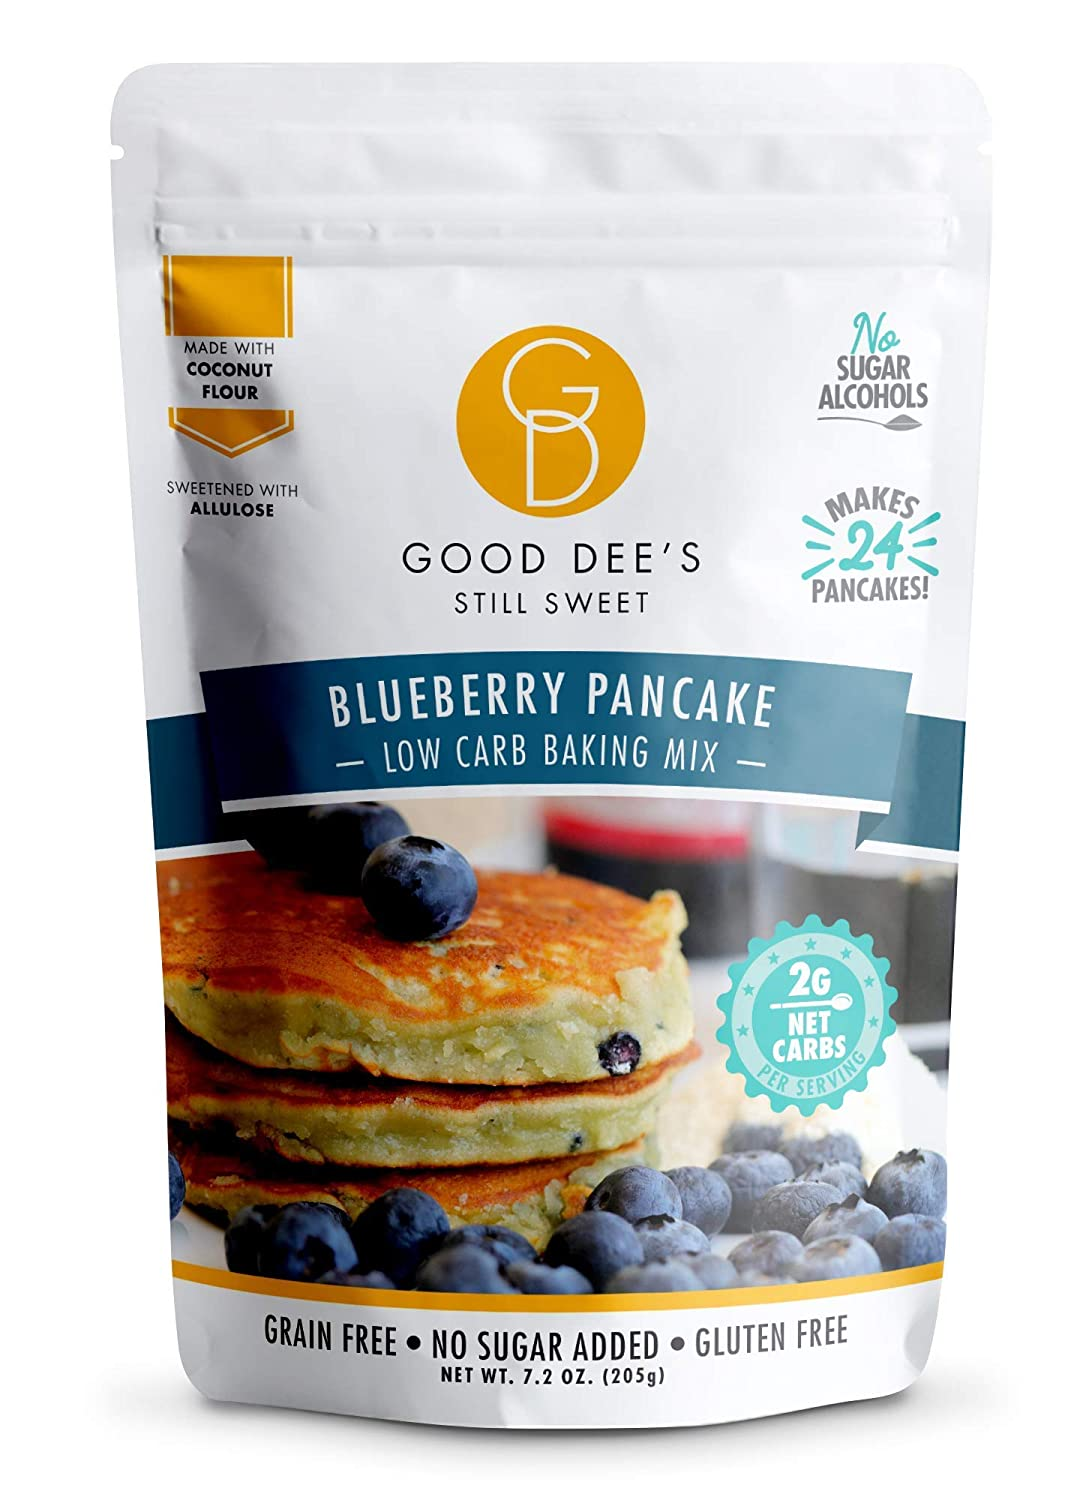 Good Dee's Blueberry Pancake Mix - Low Carb Keto Baking Mix (2g Net Carbs, 24 Pancakes) | Allulose Sweetened, Sugar Alcohol-Free, Gluten-Free & Grain-Free | Diabetic, Atkins & WW Friendly